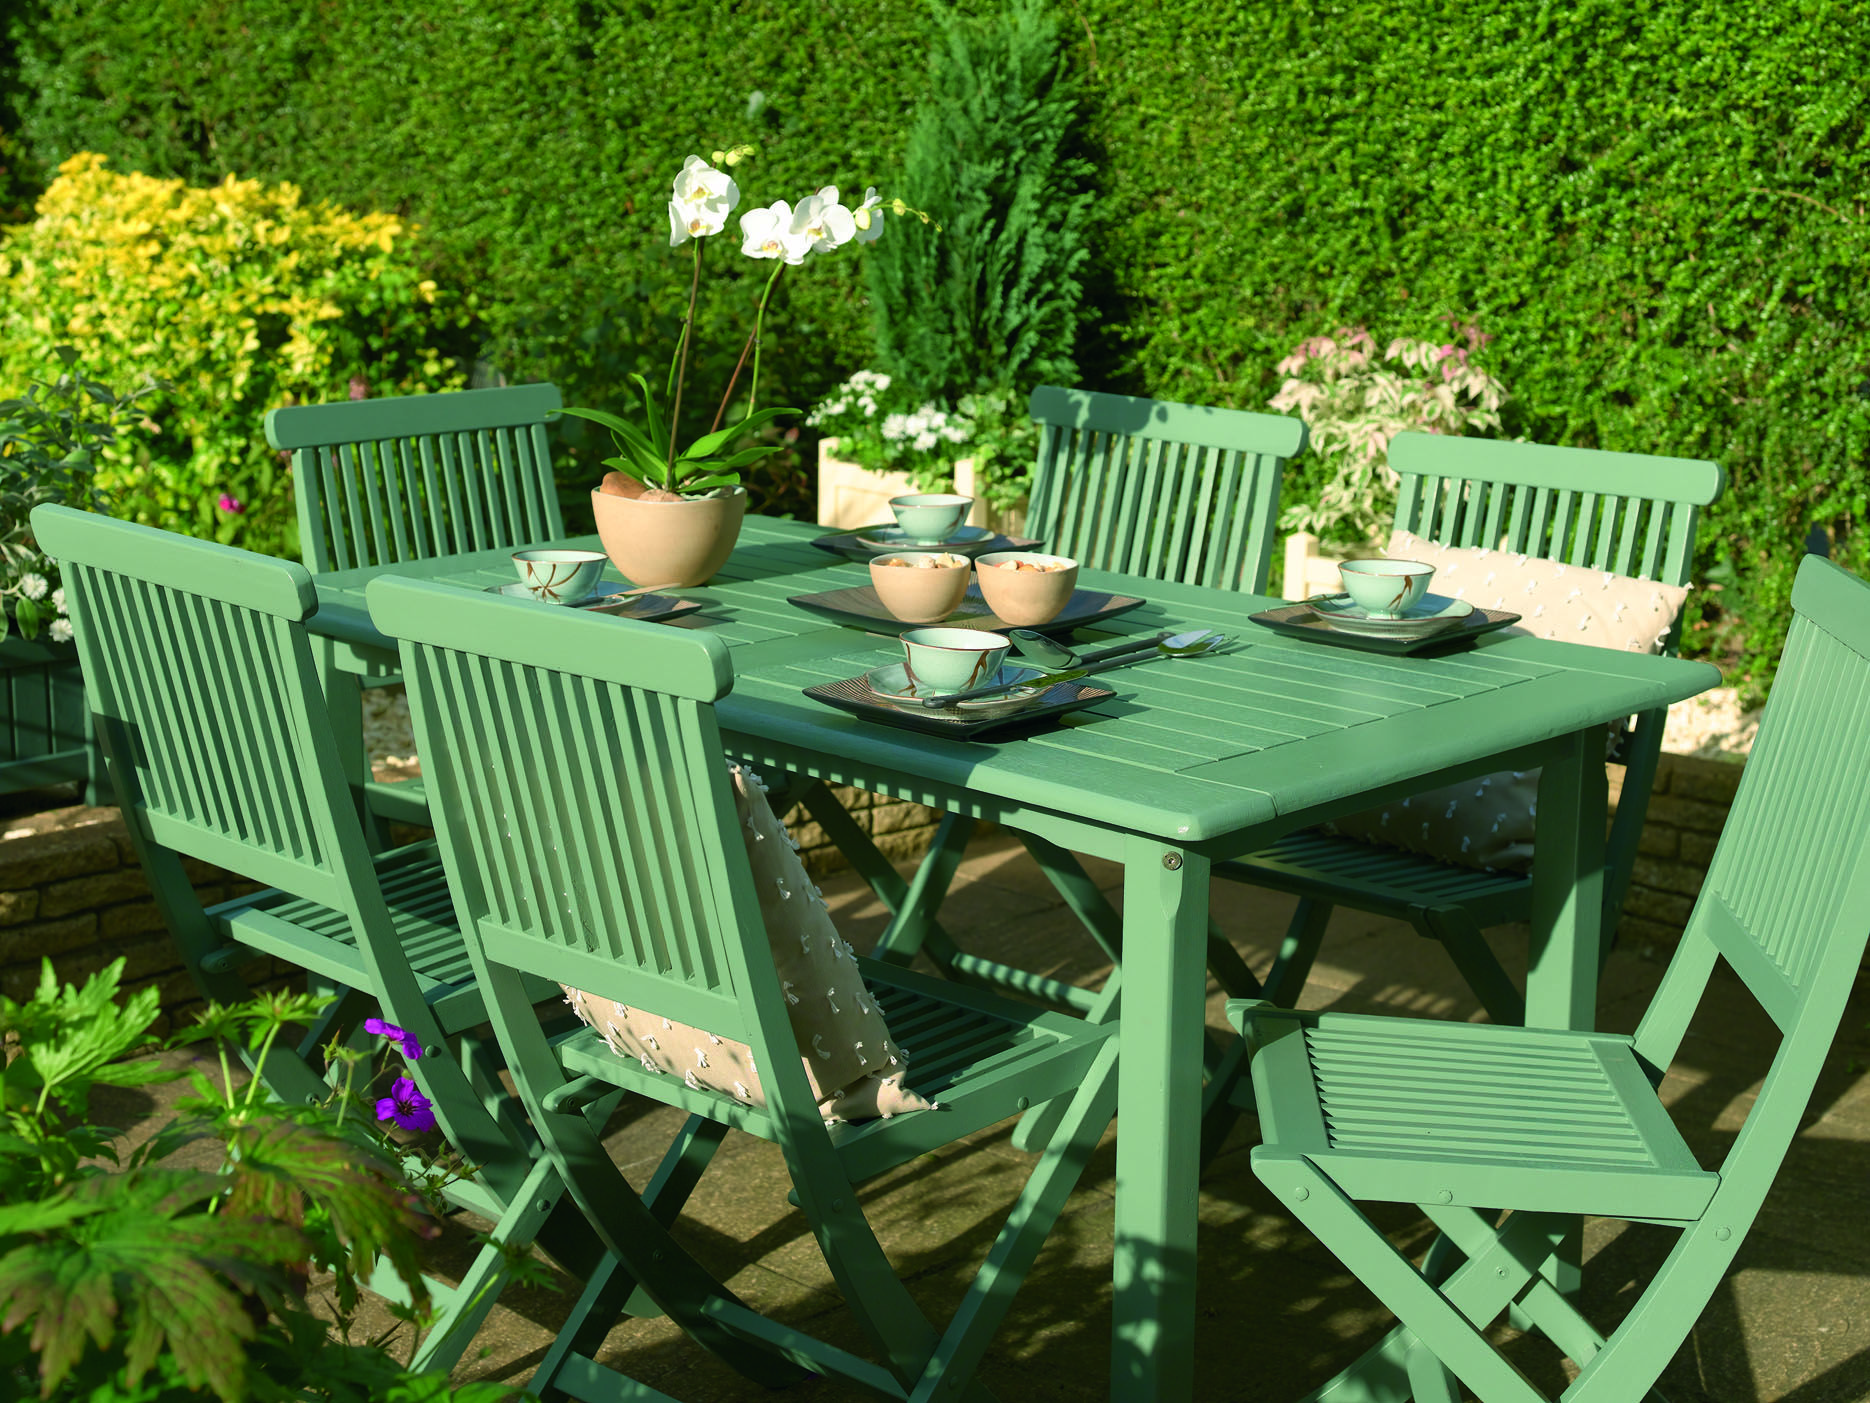 Pin By Suzanne Duvall On Garden Colour Cuprinol Garden Shades Painted Garden Furniture Outdoor Garden Furniture